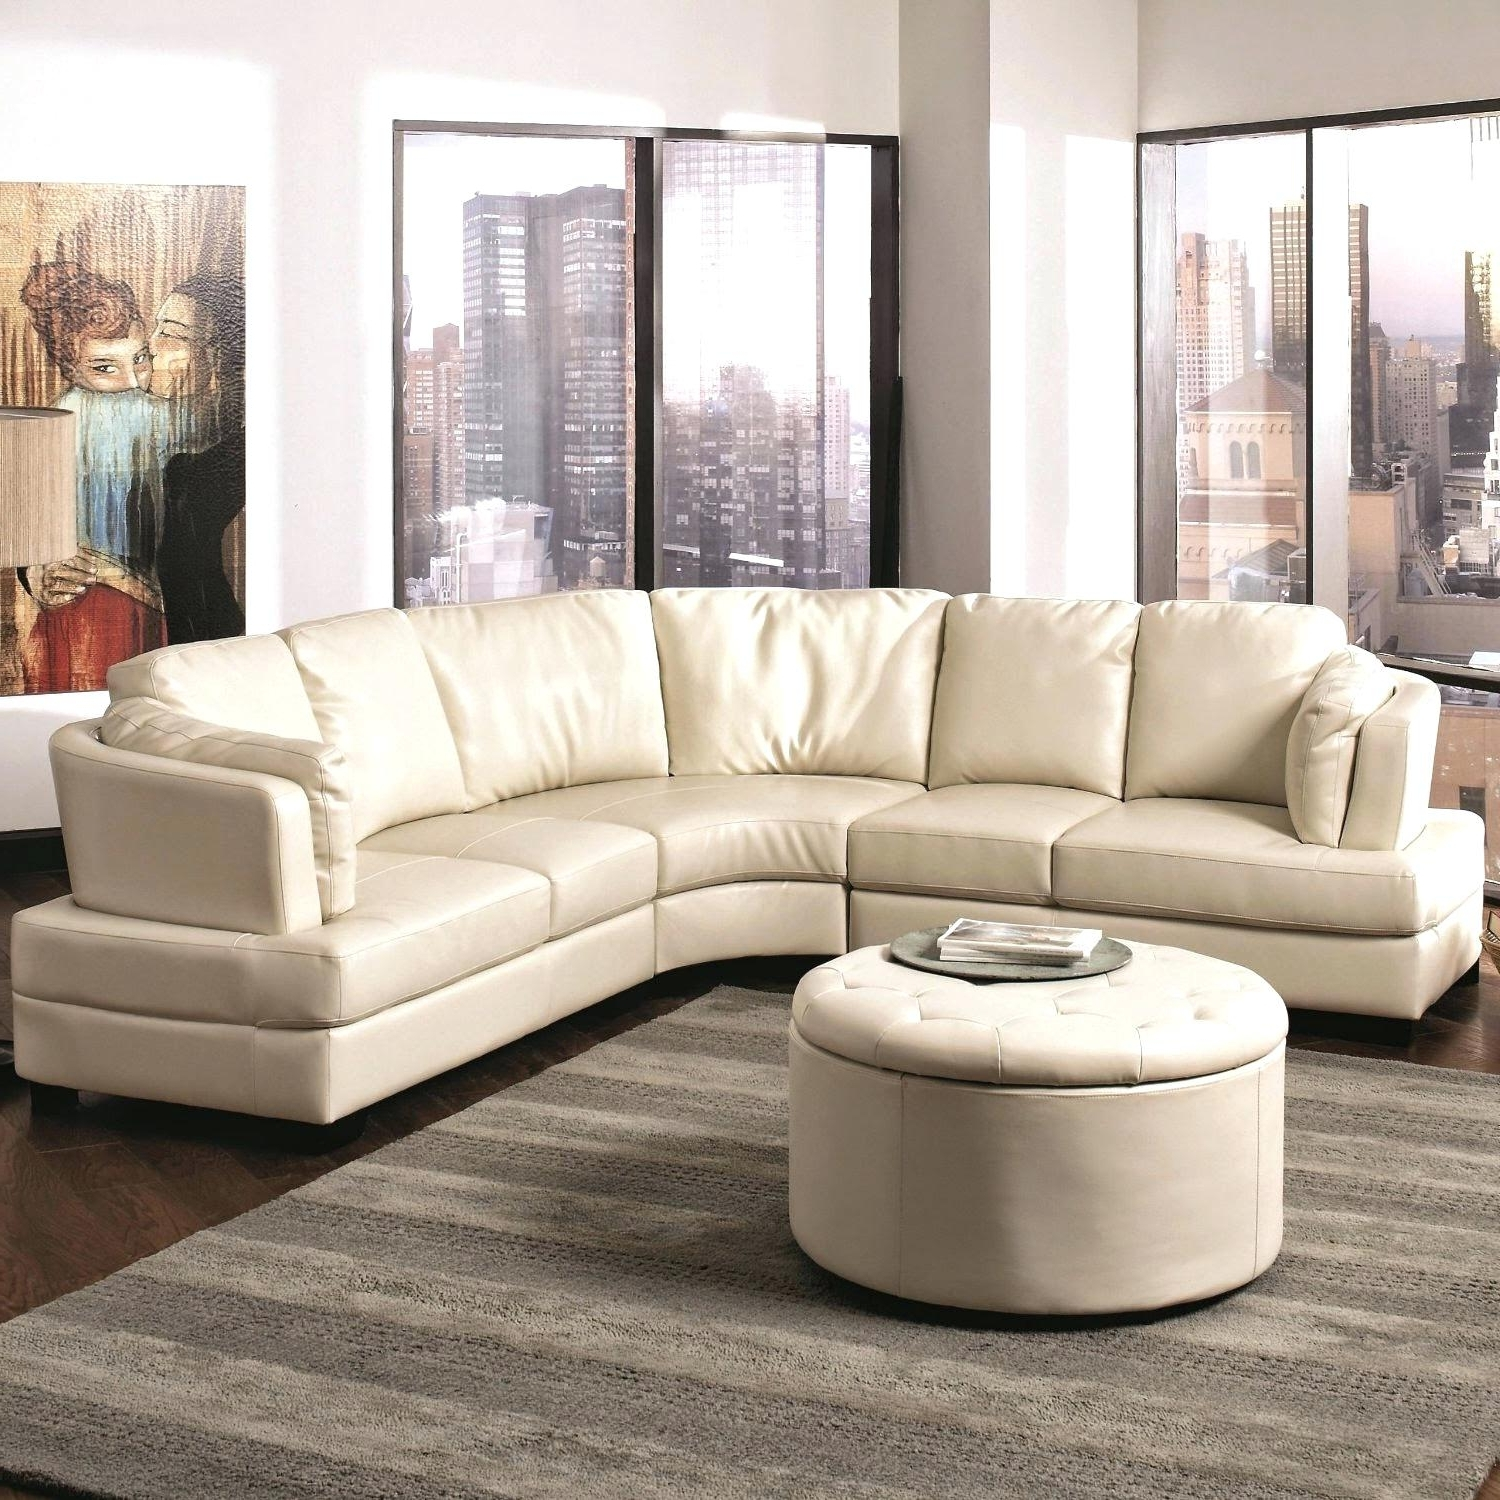 Sectional Sofa Sale Sa Couches For Near Me Liquidation Toronto For Preferred Ontario Sectional Sofas (View 2 of 15)